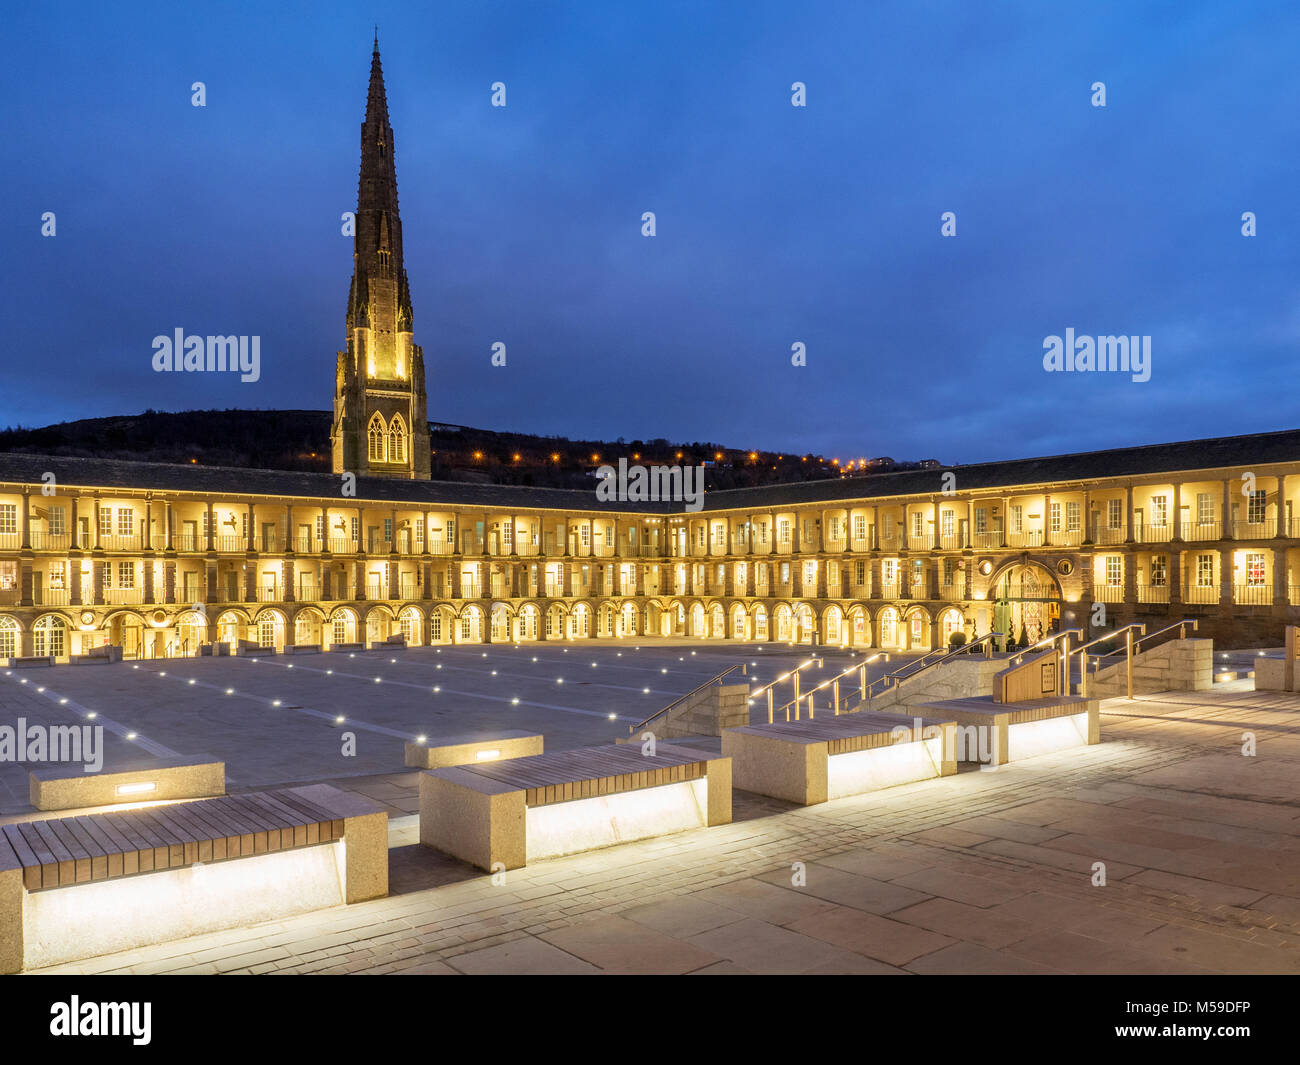 The Piece Hall at dusk Halifax West Yorkshire England - Stock Image